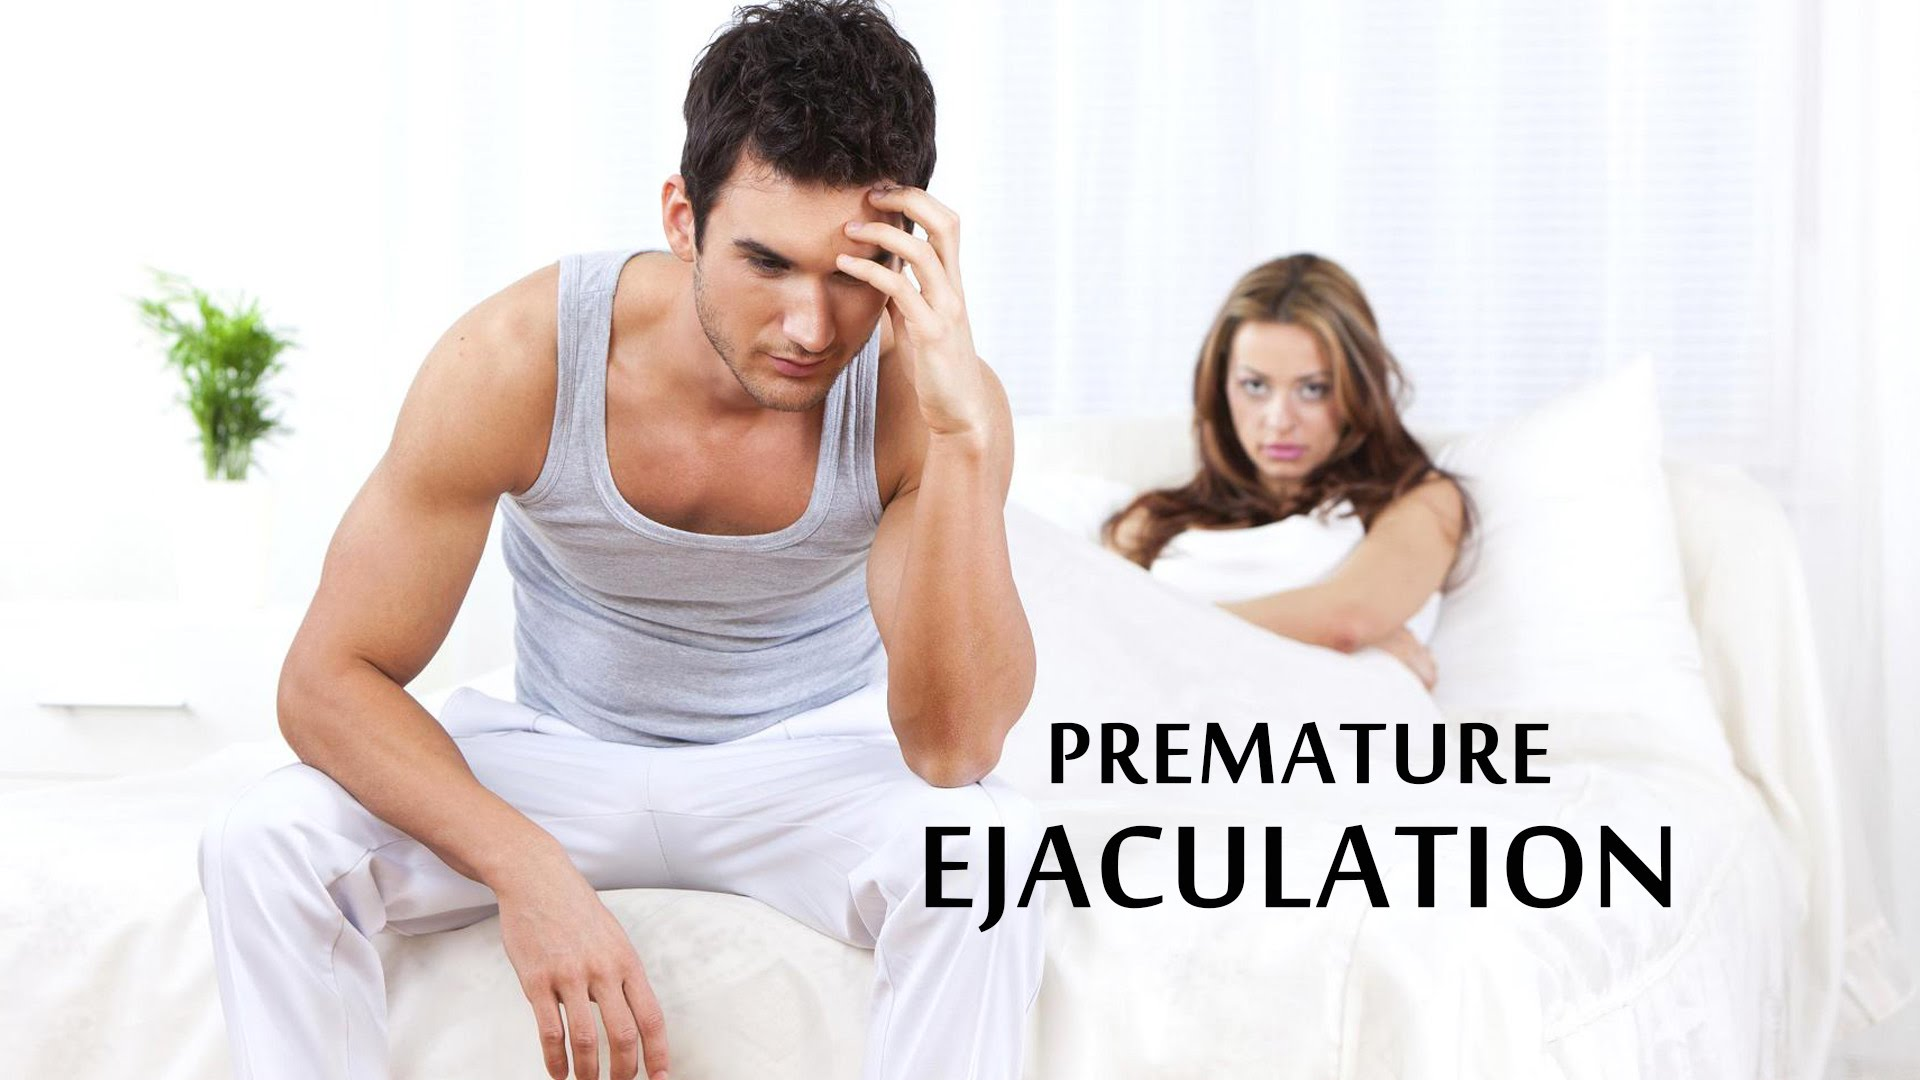 Premature Ejaculation can be treated with sex therapy - contact Stewart Therapies now on 0438719088